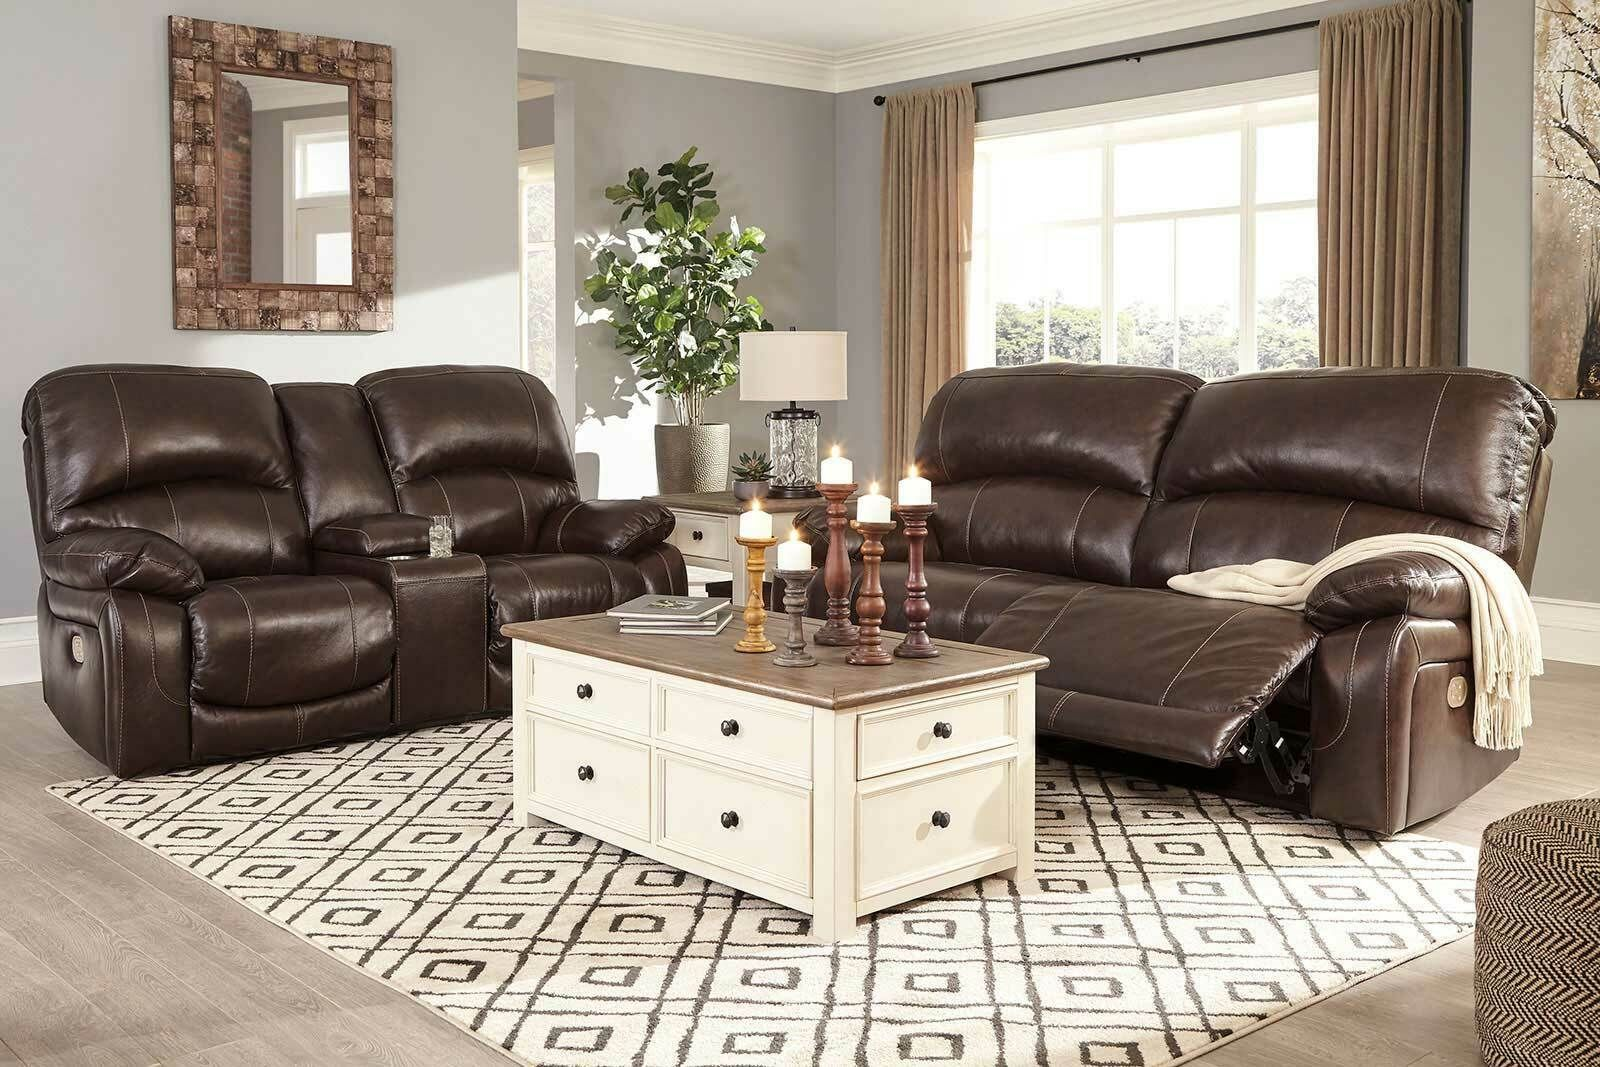 New Living Room Furniture Brown Leather Power Reclining Sofa Loveseat Set If1 In 2020 Brown Leather Sofa Living Room Modern Living Room Brown Brown Couch Living Room